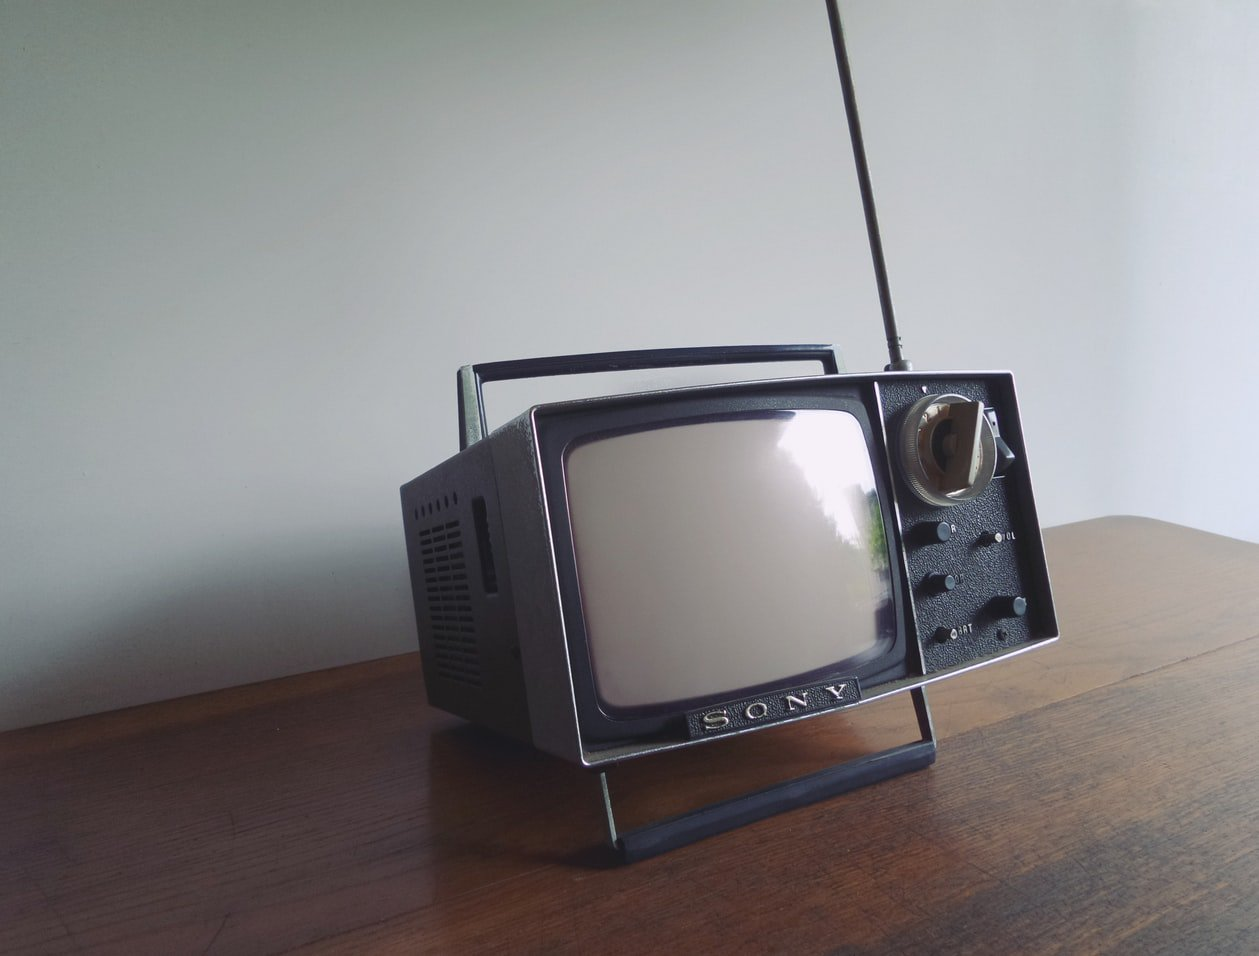 An old school television. Sleep apnea or restless leg syndrome are common sleep issues for seniors